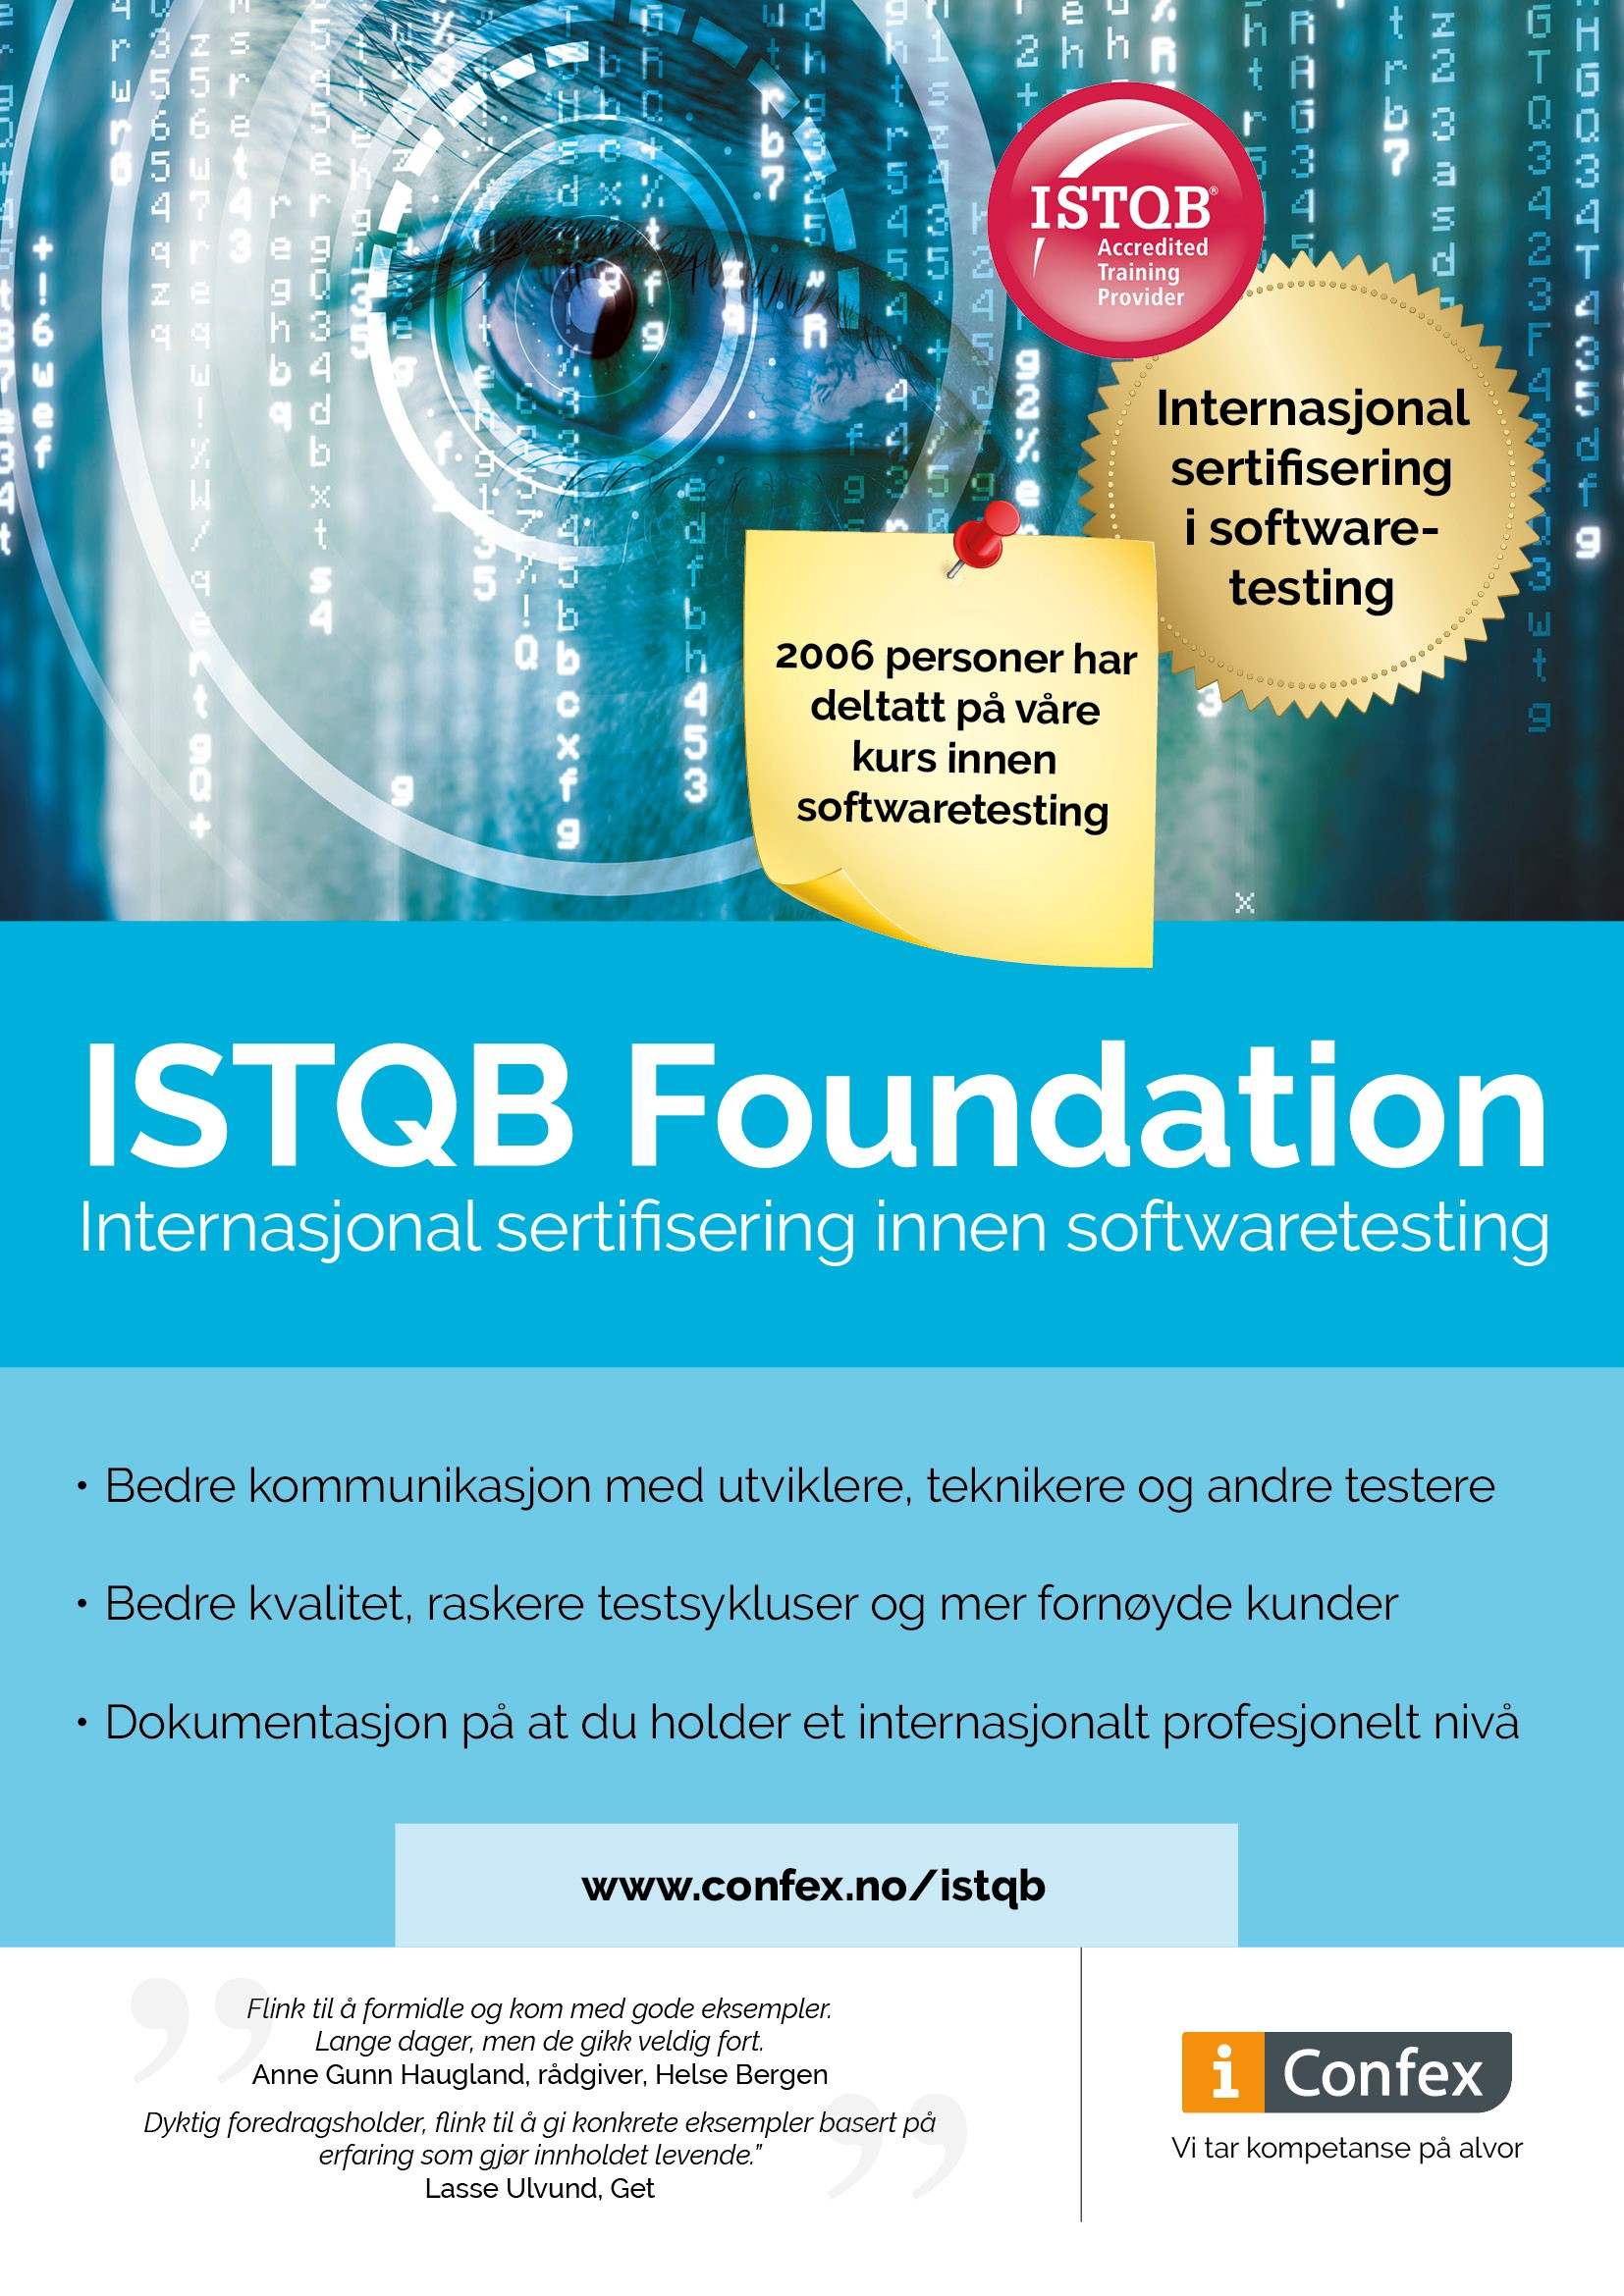 Omslag for ISTQB Foundation - internasjonal sertifisering i softwaretesting